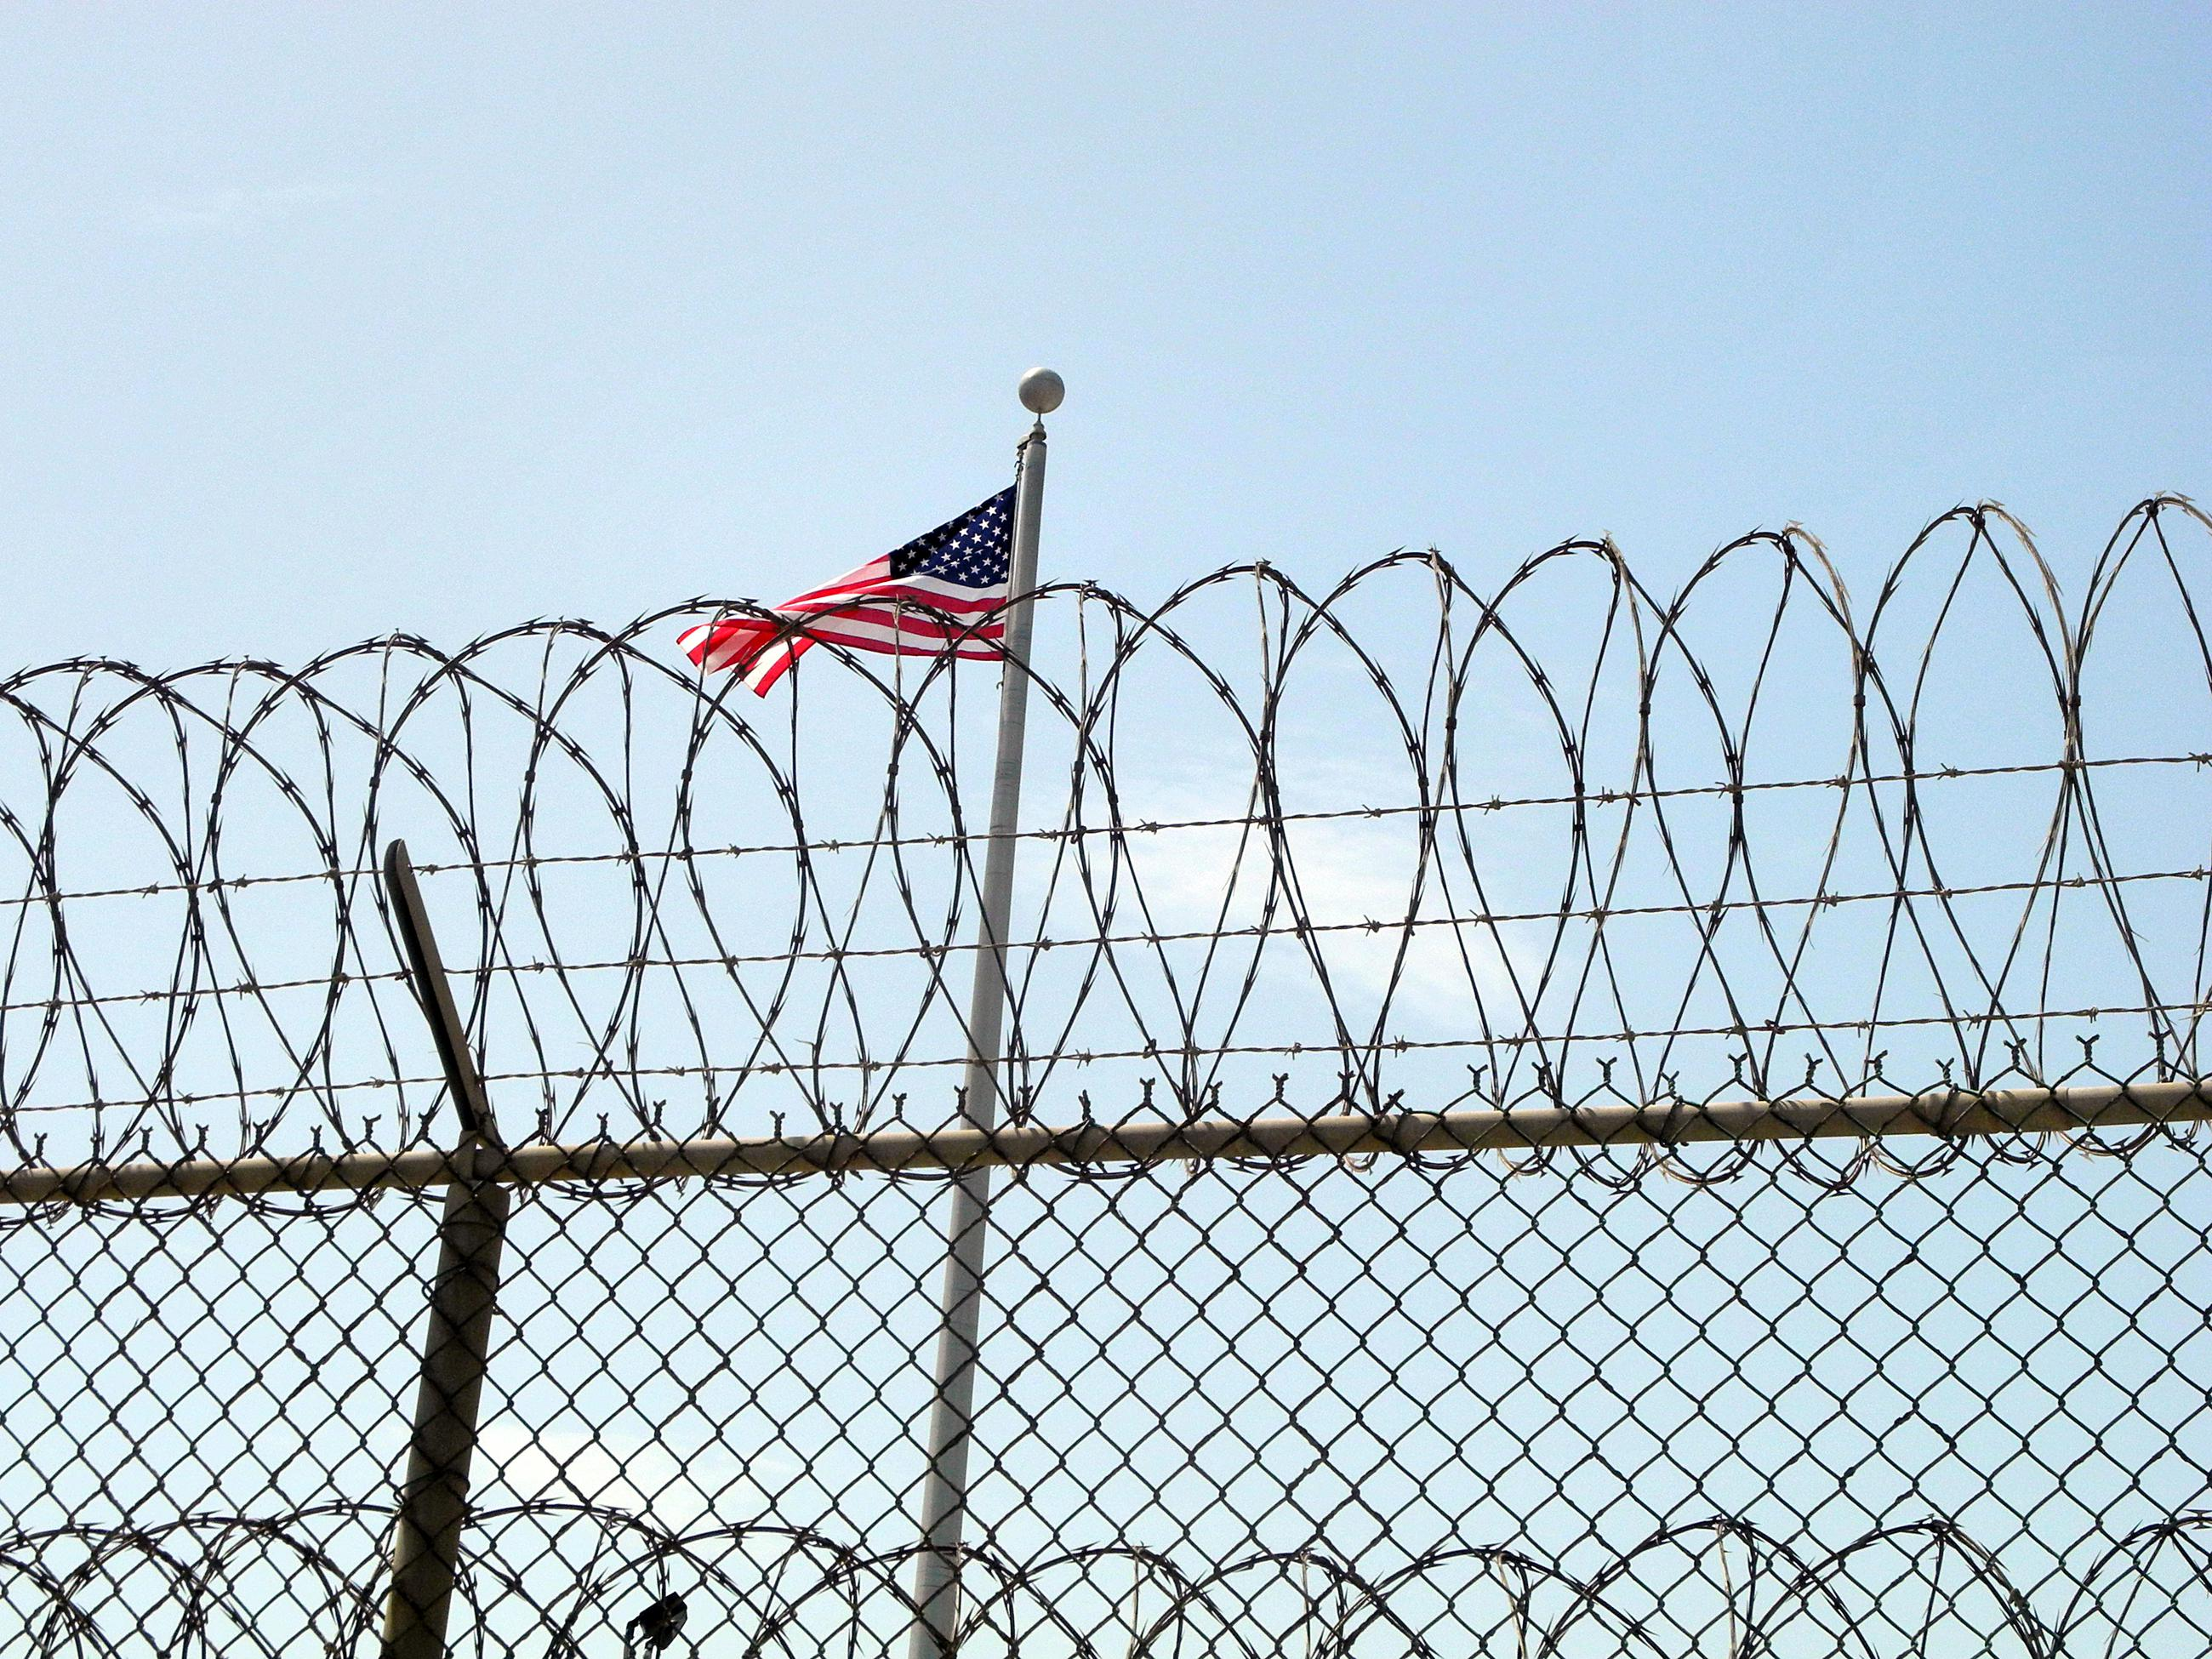 Panel: U.S. Doctors Violated Medical, Ethical Standards in Detention Facilities